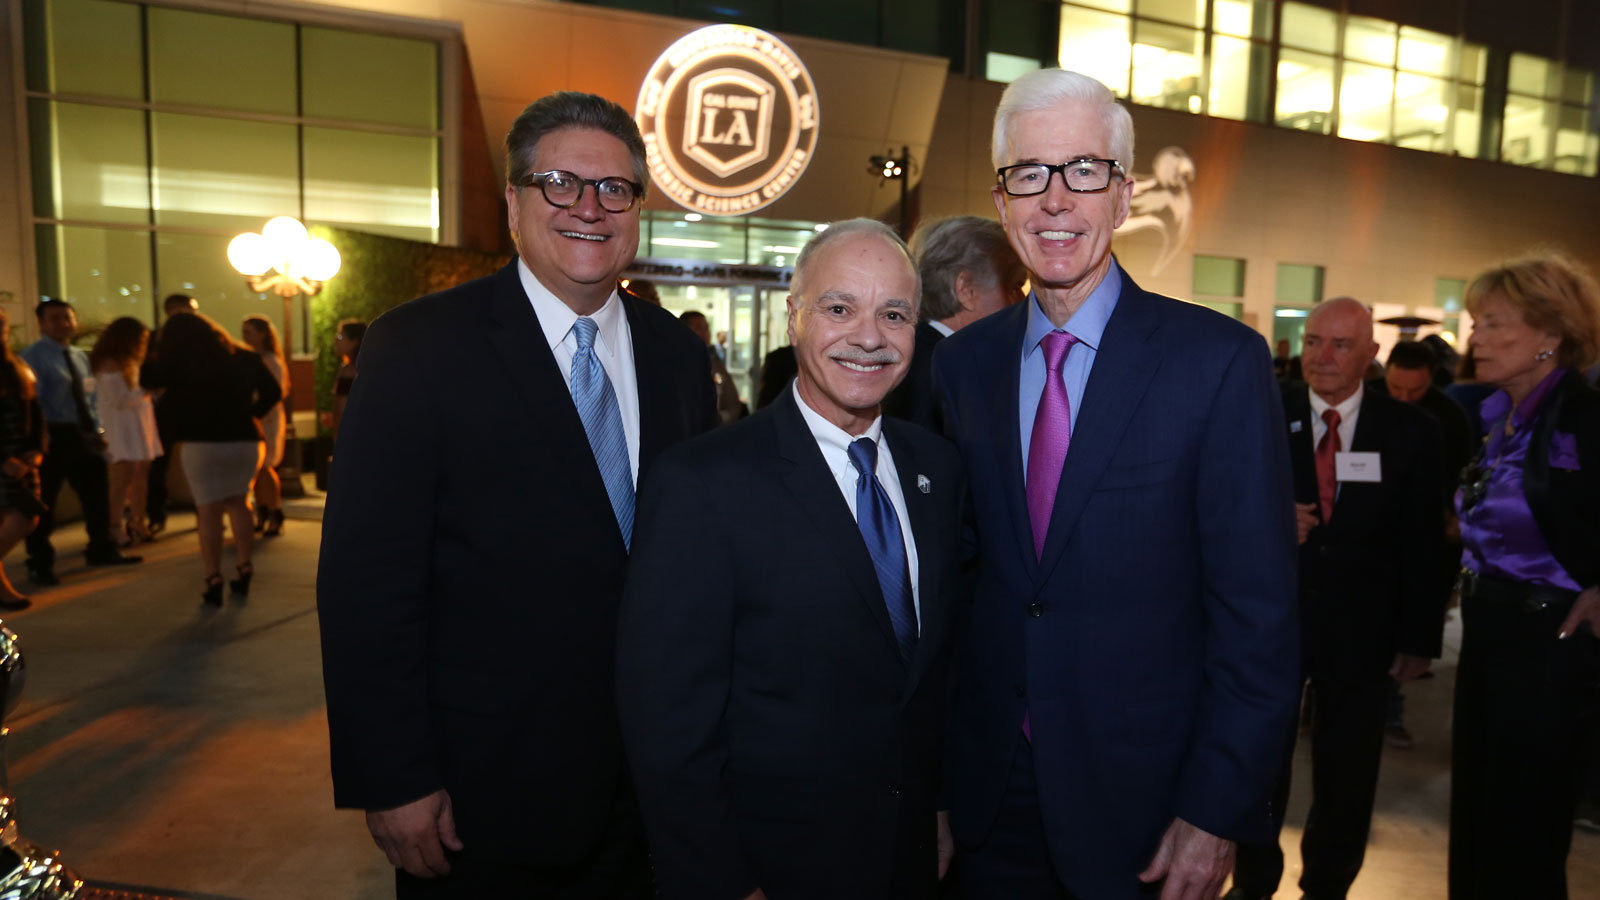 Cal State LA President William Covino (center) with State Sen. Robert M. Hertzberg (left) and former Gov. Gray Davis (right).